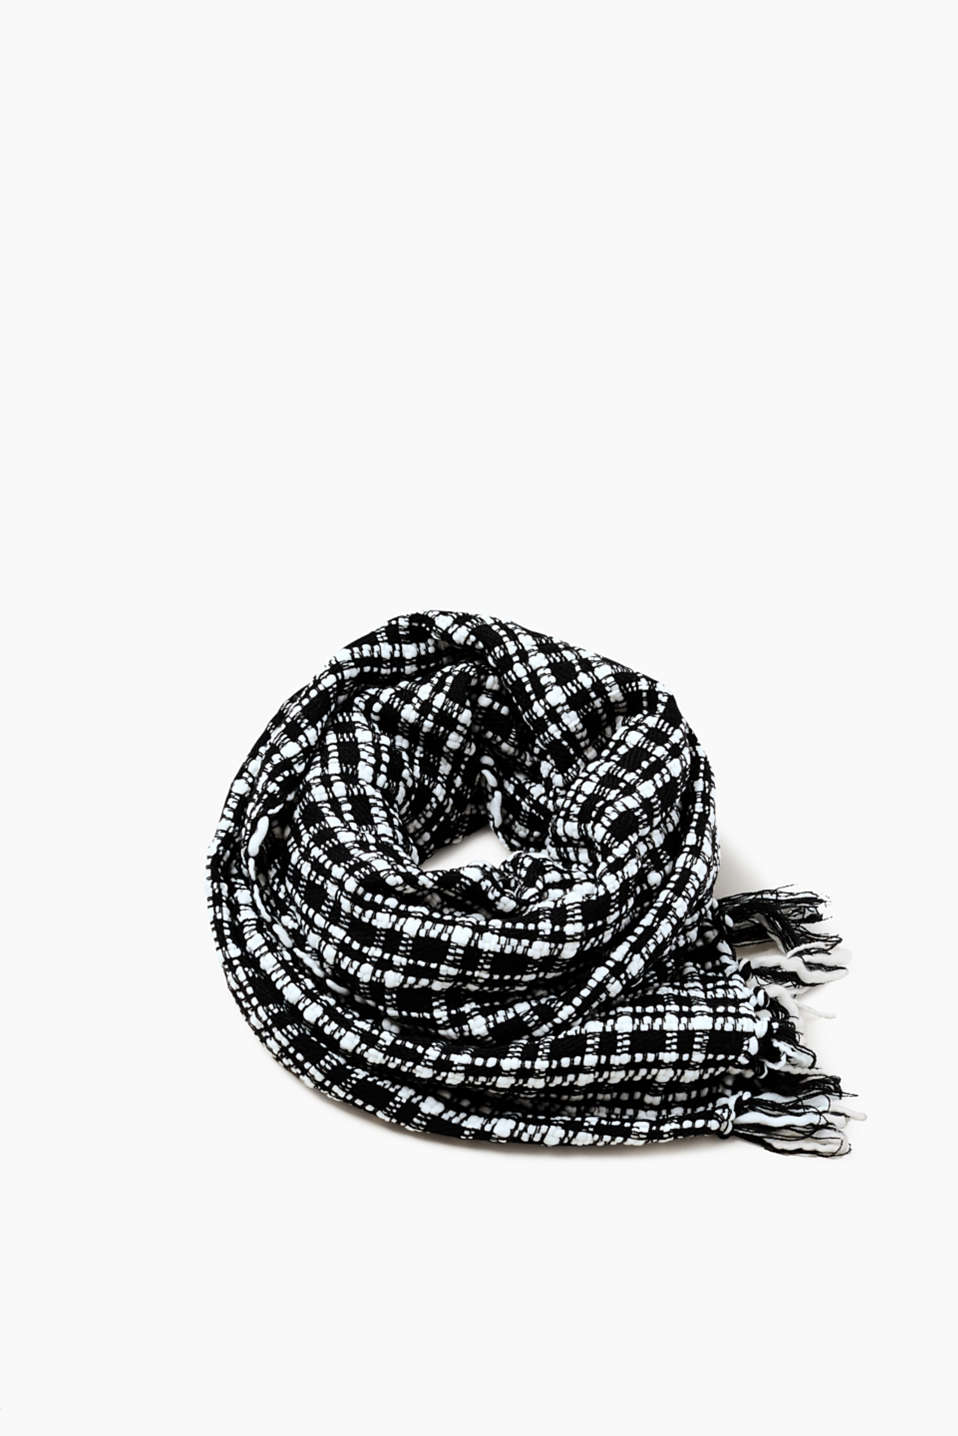 We love black and white! This scarf wows with its chunky woven checked look.